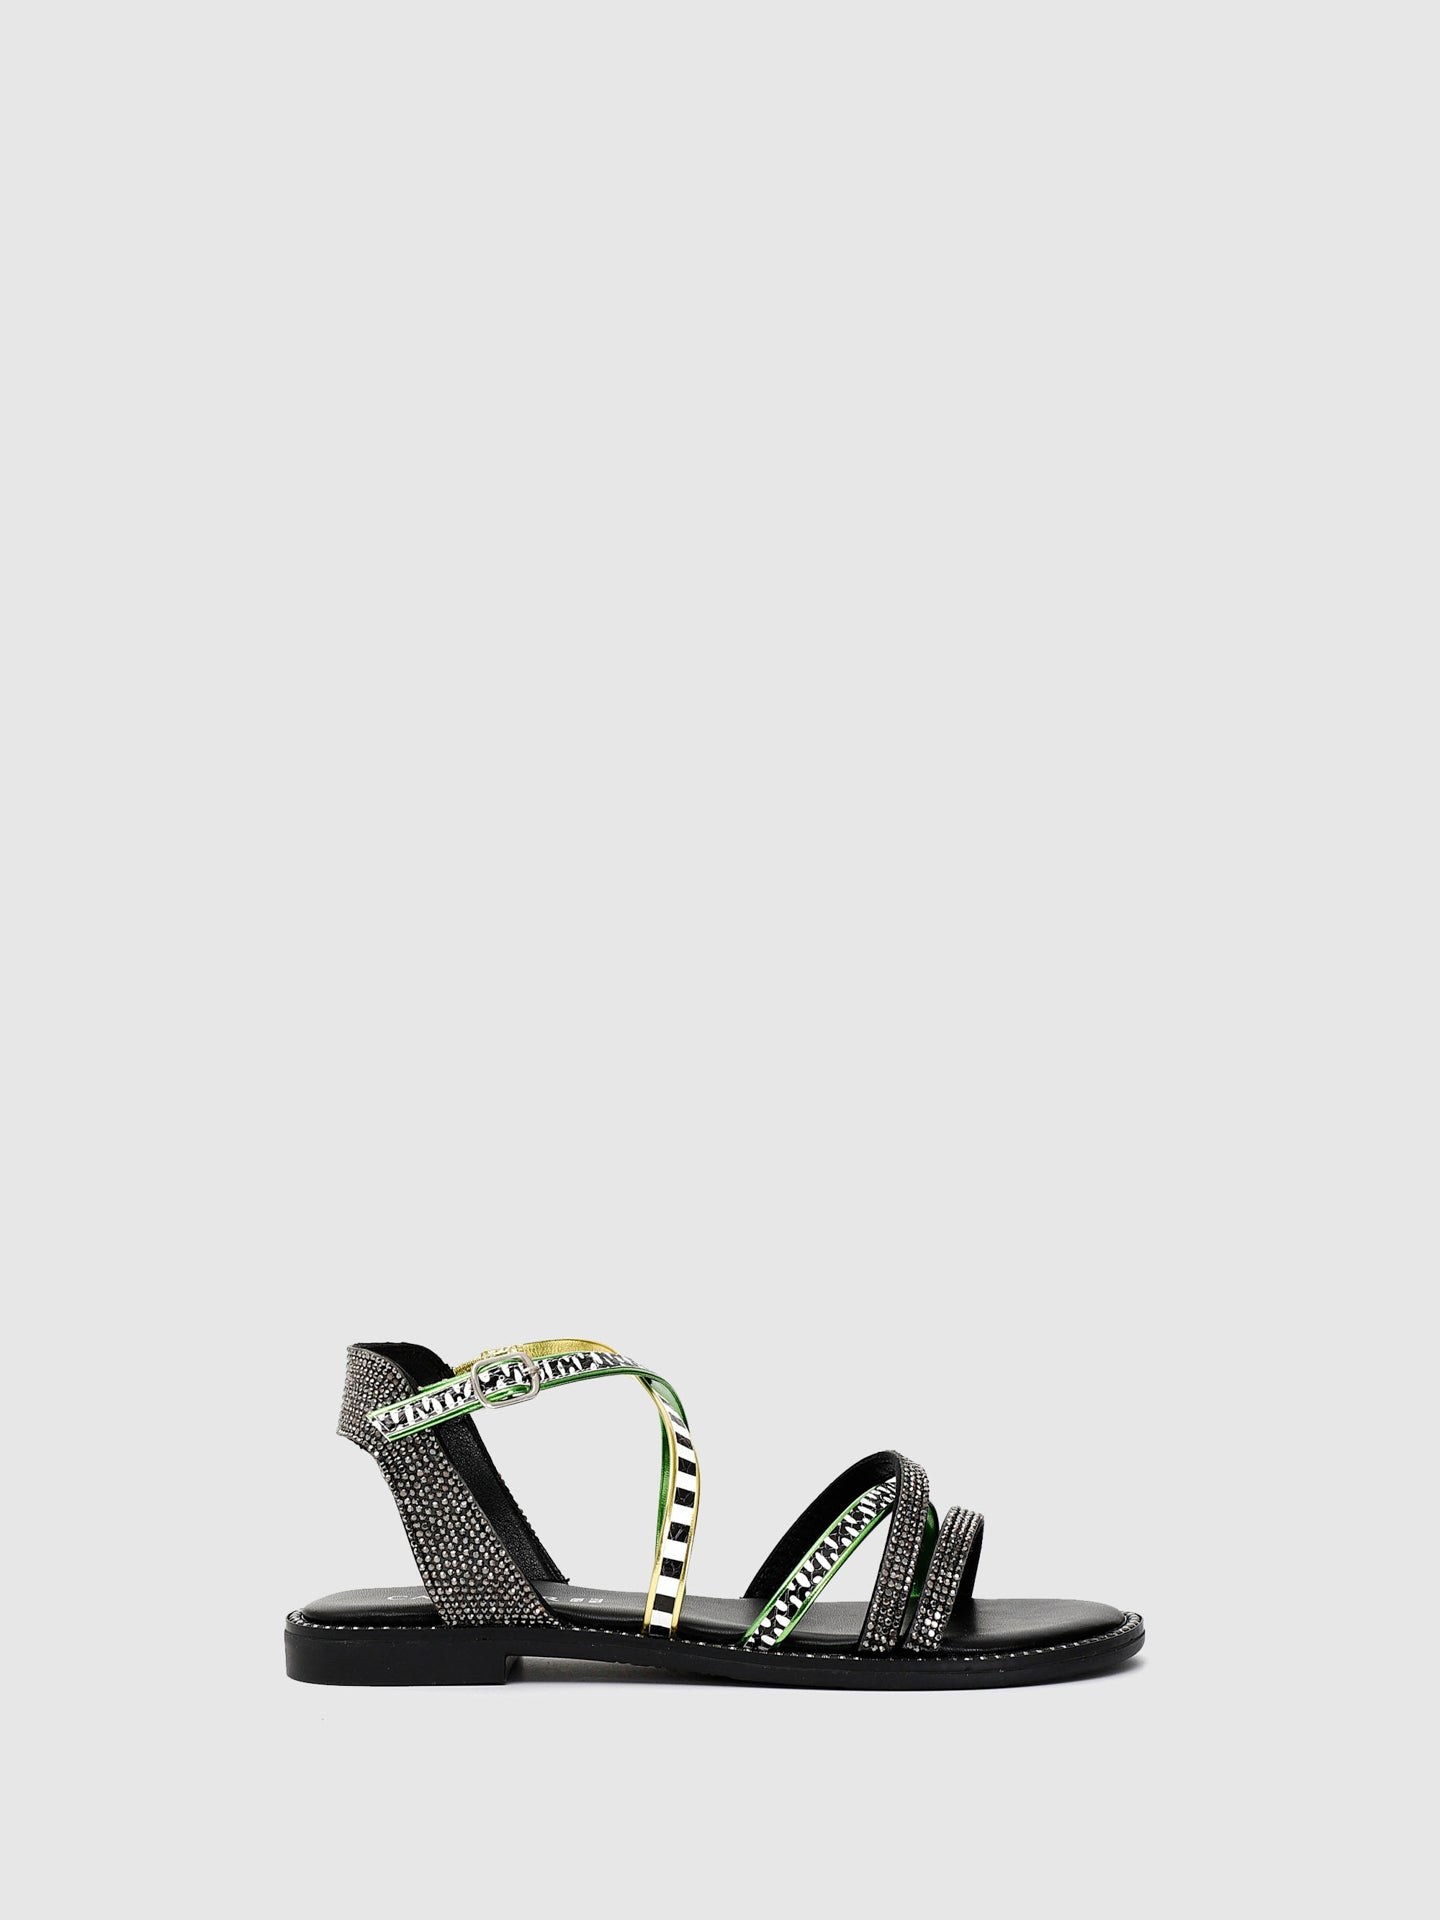 Cafè Noir Black Ankle Strap Sandals